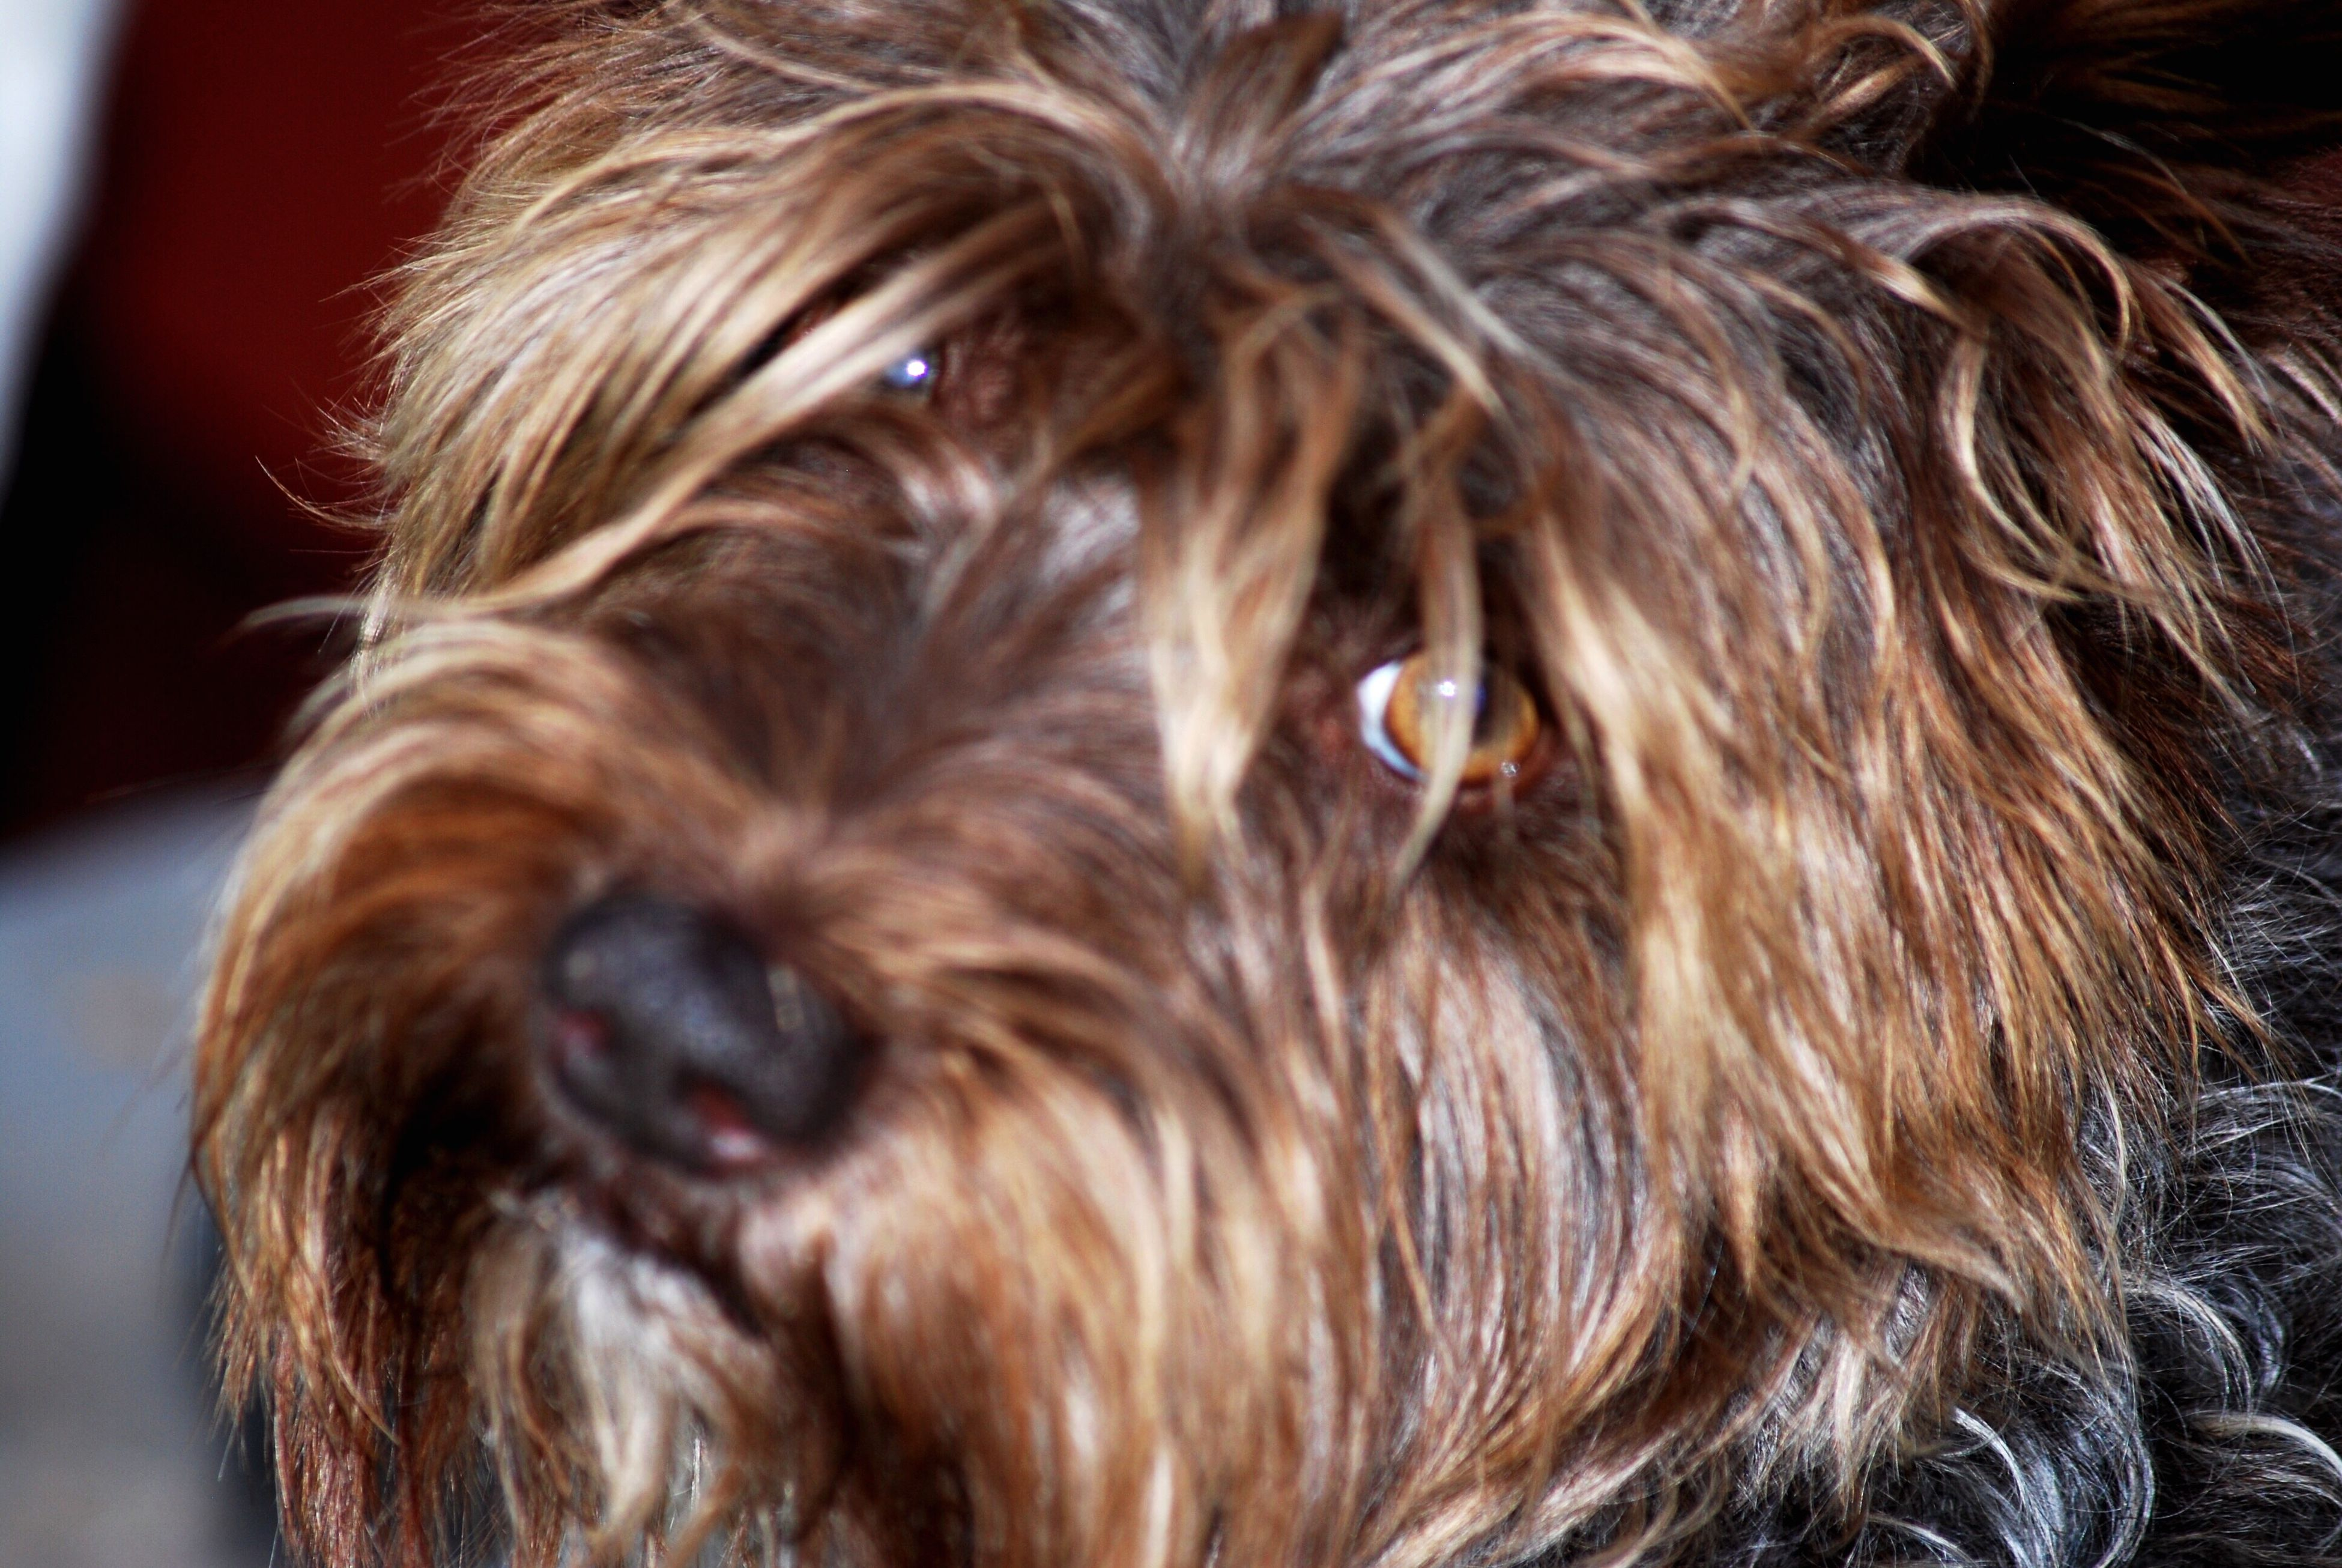 one animal, dog, domestic animals, animal themes, pets, close-up, animal hair, animal head, brown, mammal, yorkshire terrier, focus on foreground, looking at camera, hairy, terrier, no people, zoology, looking